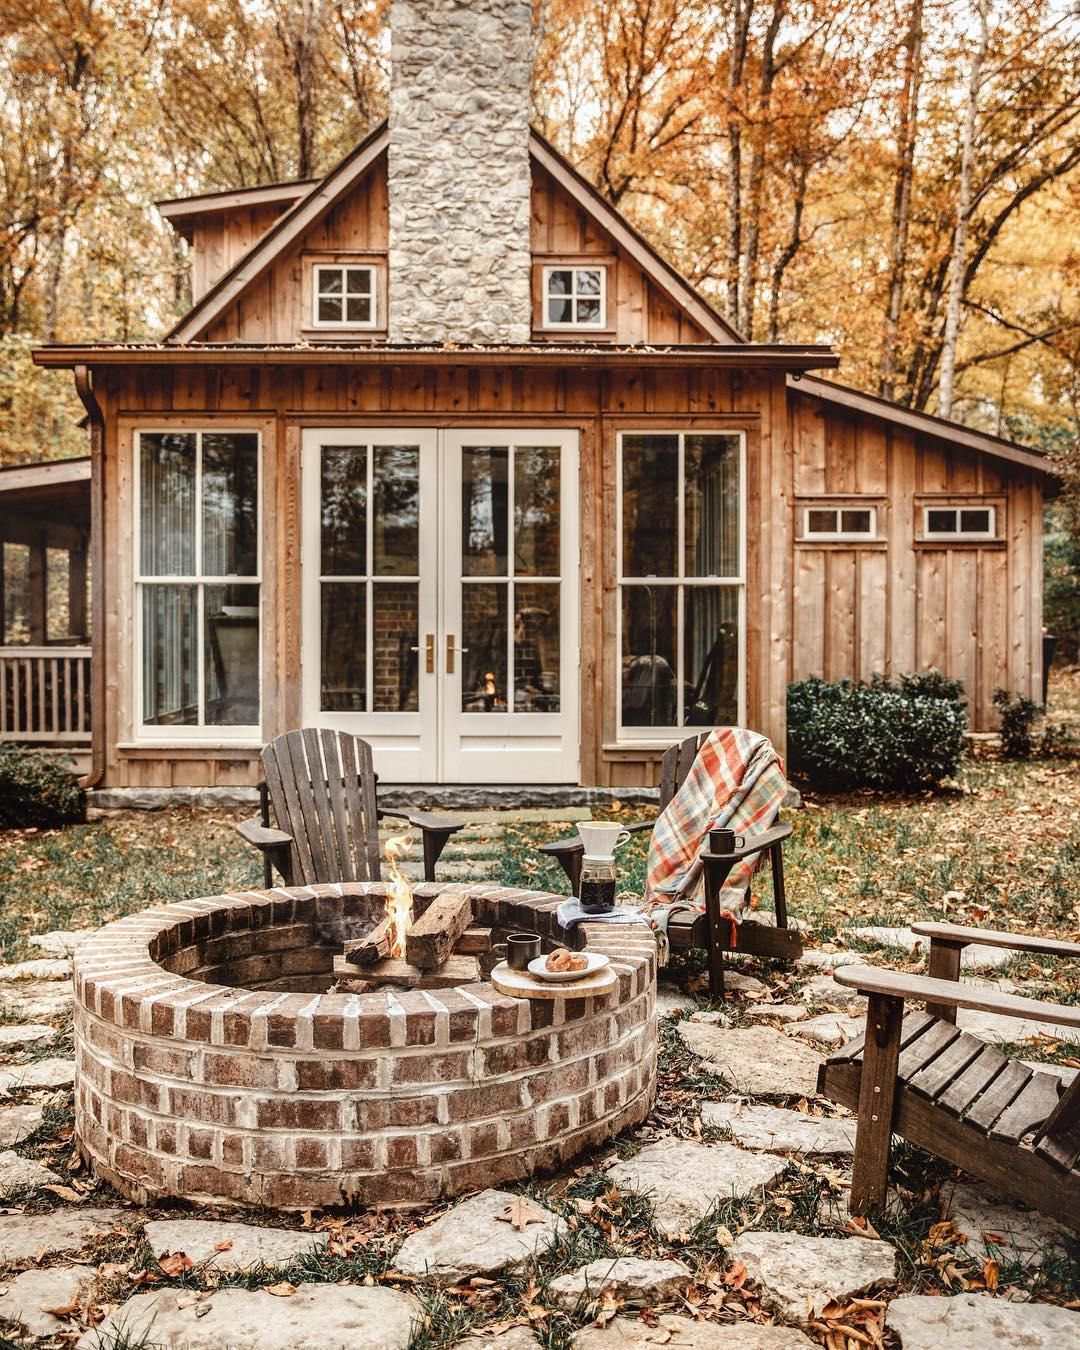 40+ Cozy Cabins and Homes That Are the Perfect Escape for Your Next Friendcation #tinyhome